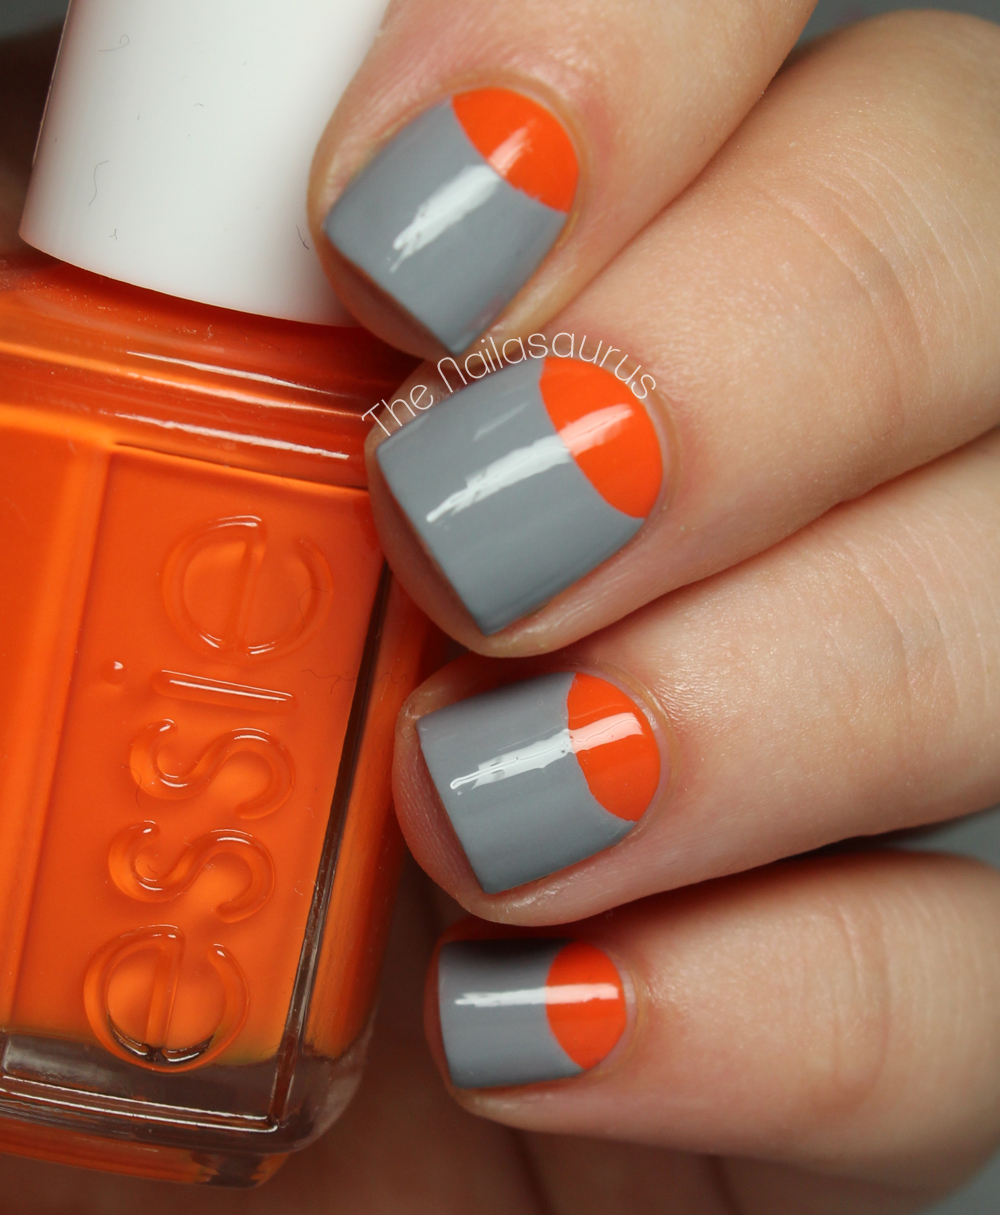 For this nail art you'll need two nail polish colors of your choice. I'm  using an orange and gray combination to give my nails a '60s mod twist. - How To Create A Half-Moon Nail More.com